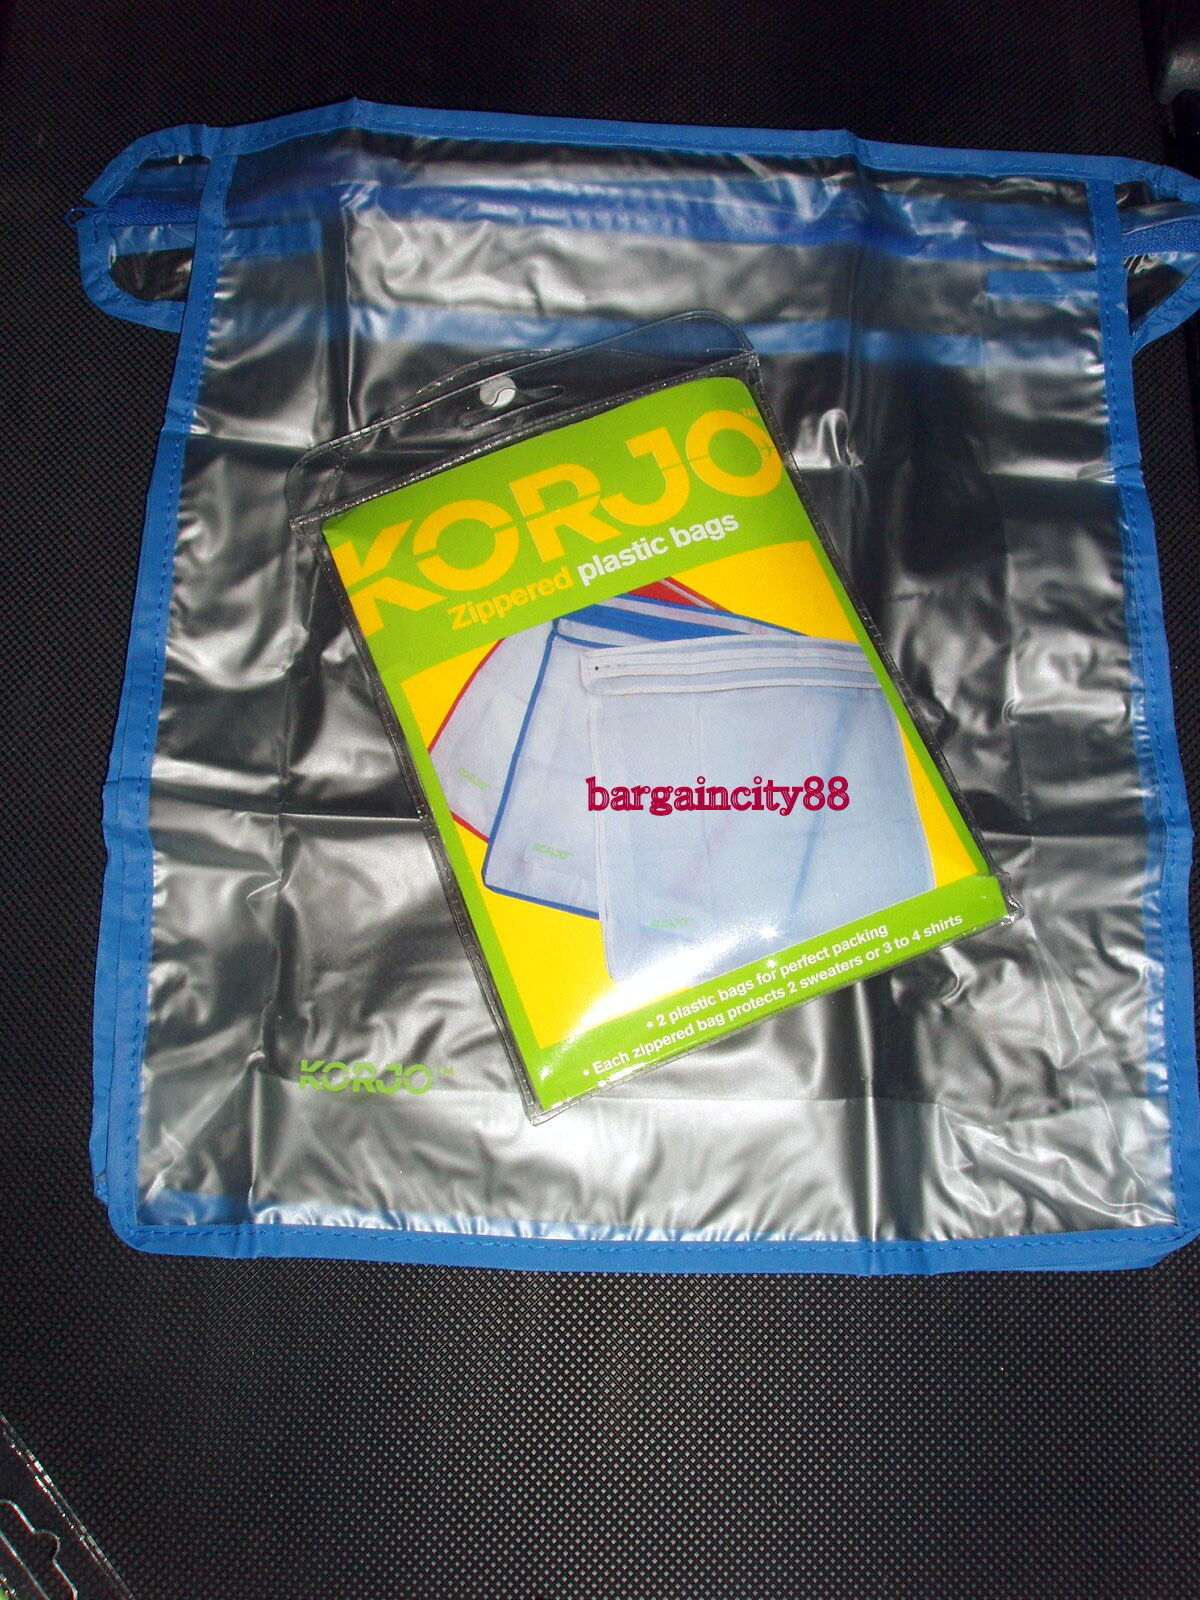 Korjo Zpb23 Zipped Plastic Packing Travel Luggage Clothes